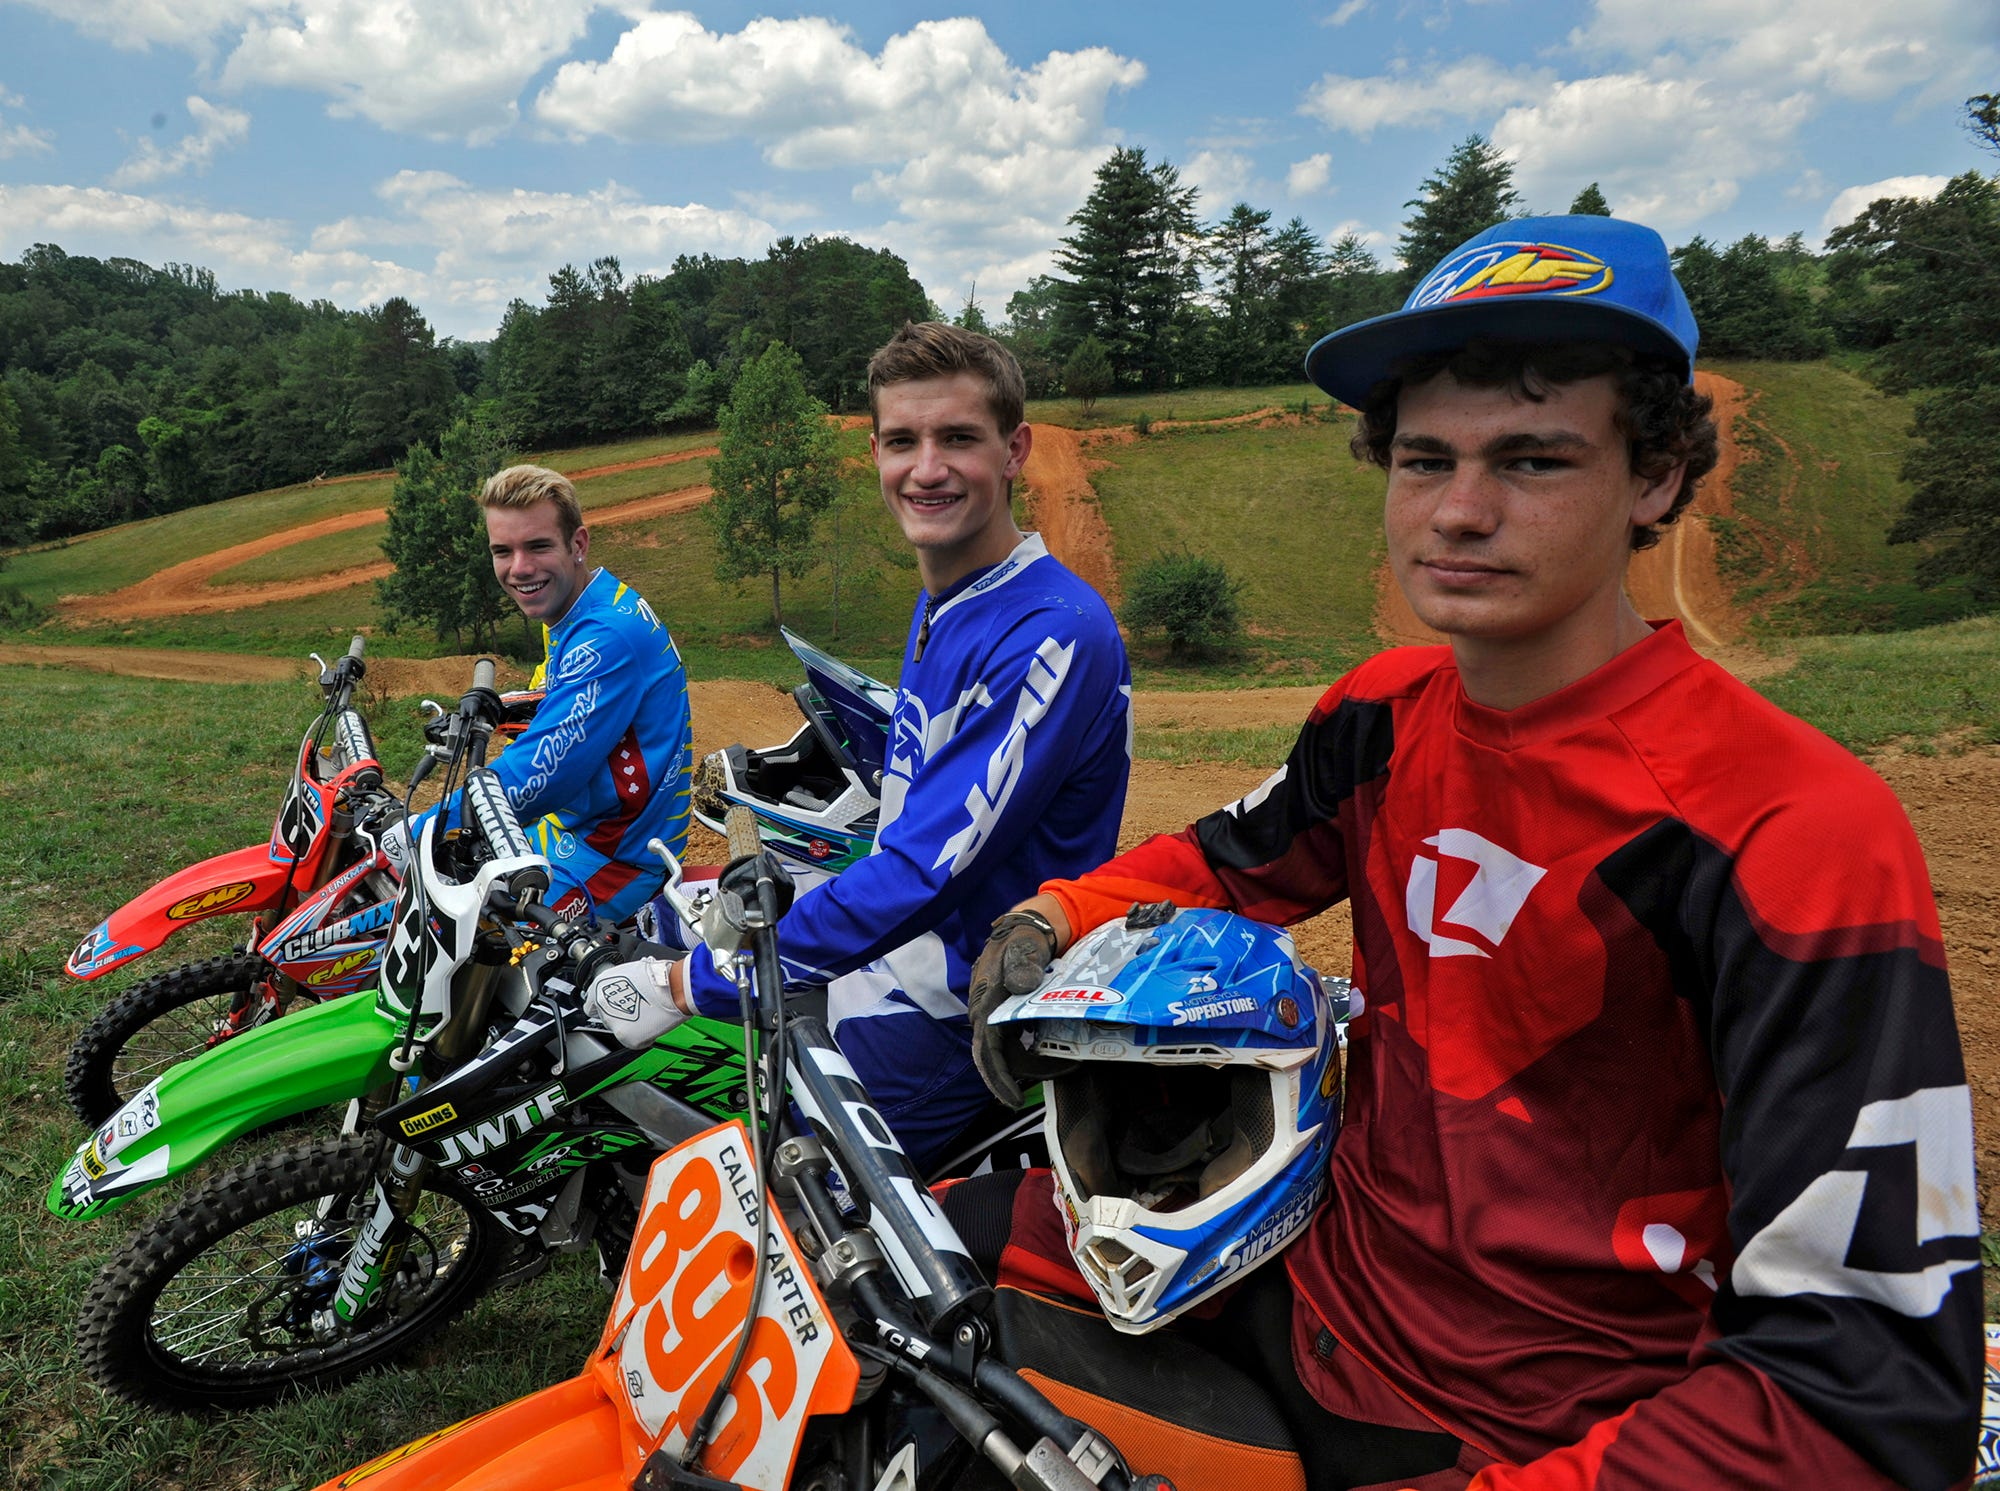 Local teenagers, from left, Kyle McElrath, Keaton Hinson and Caleb Carter will race in the Rocky Mountain ATV/MC Amateur National Motocross Championship held July 27-Aug. 2 in Hurricane Mills, Tenn.